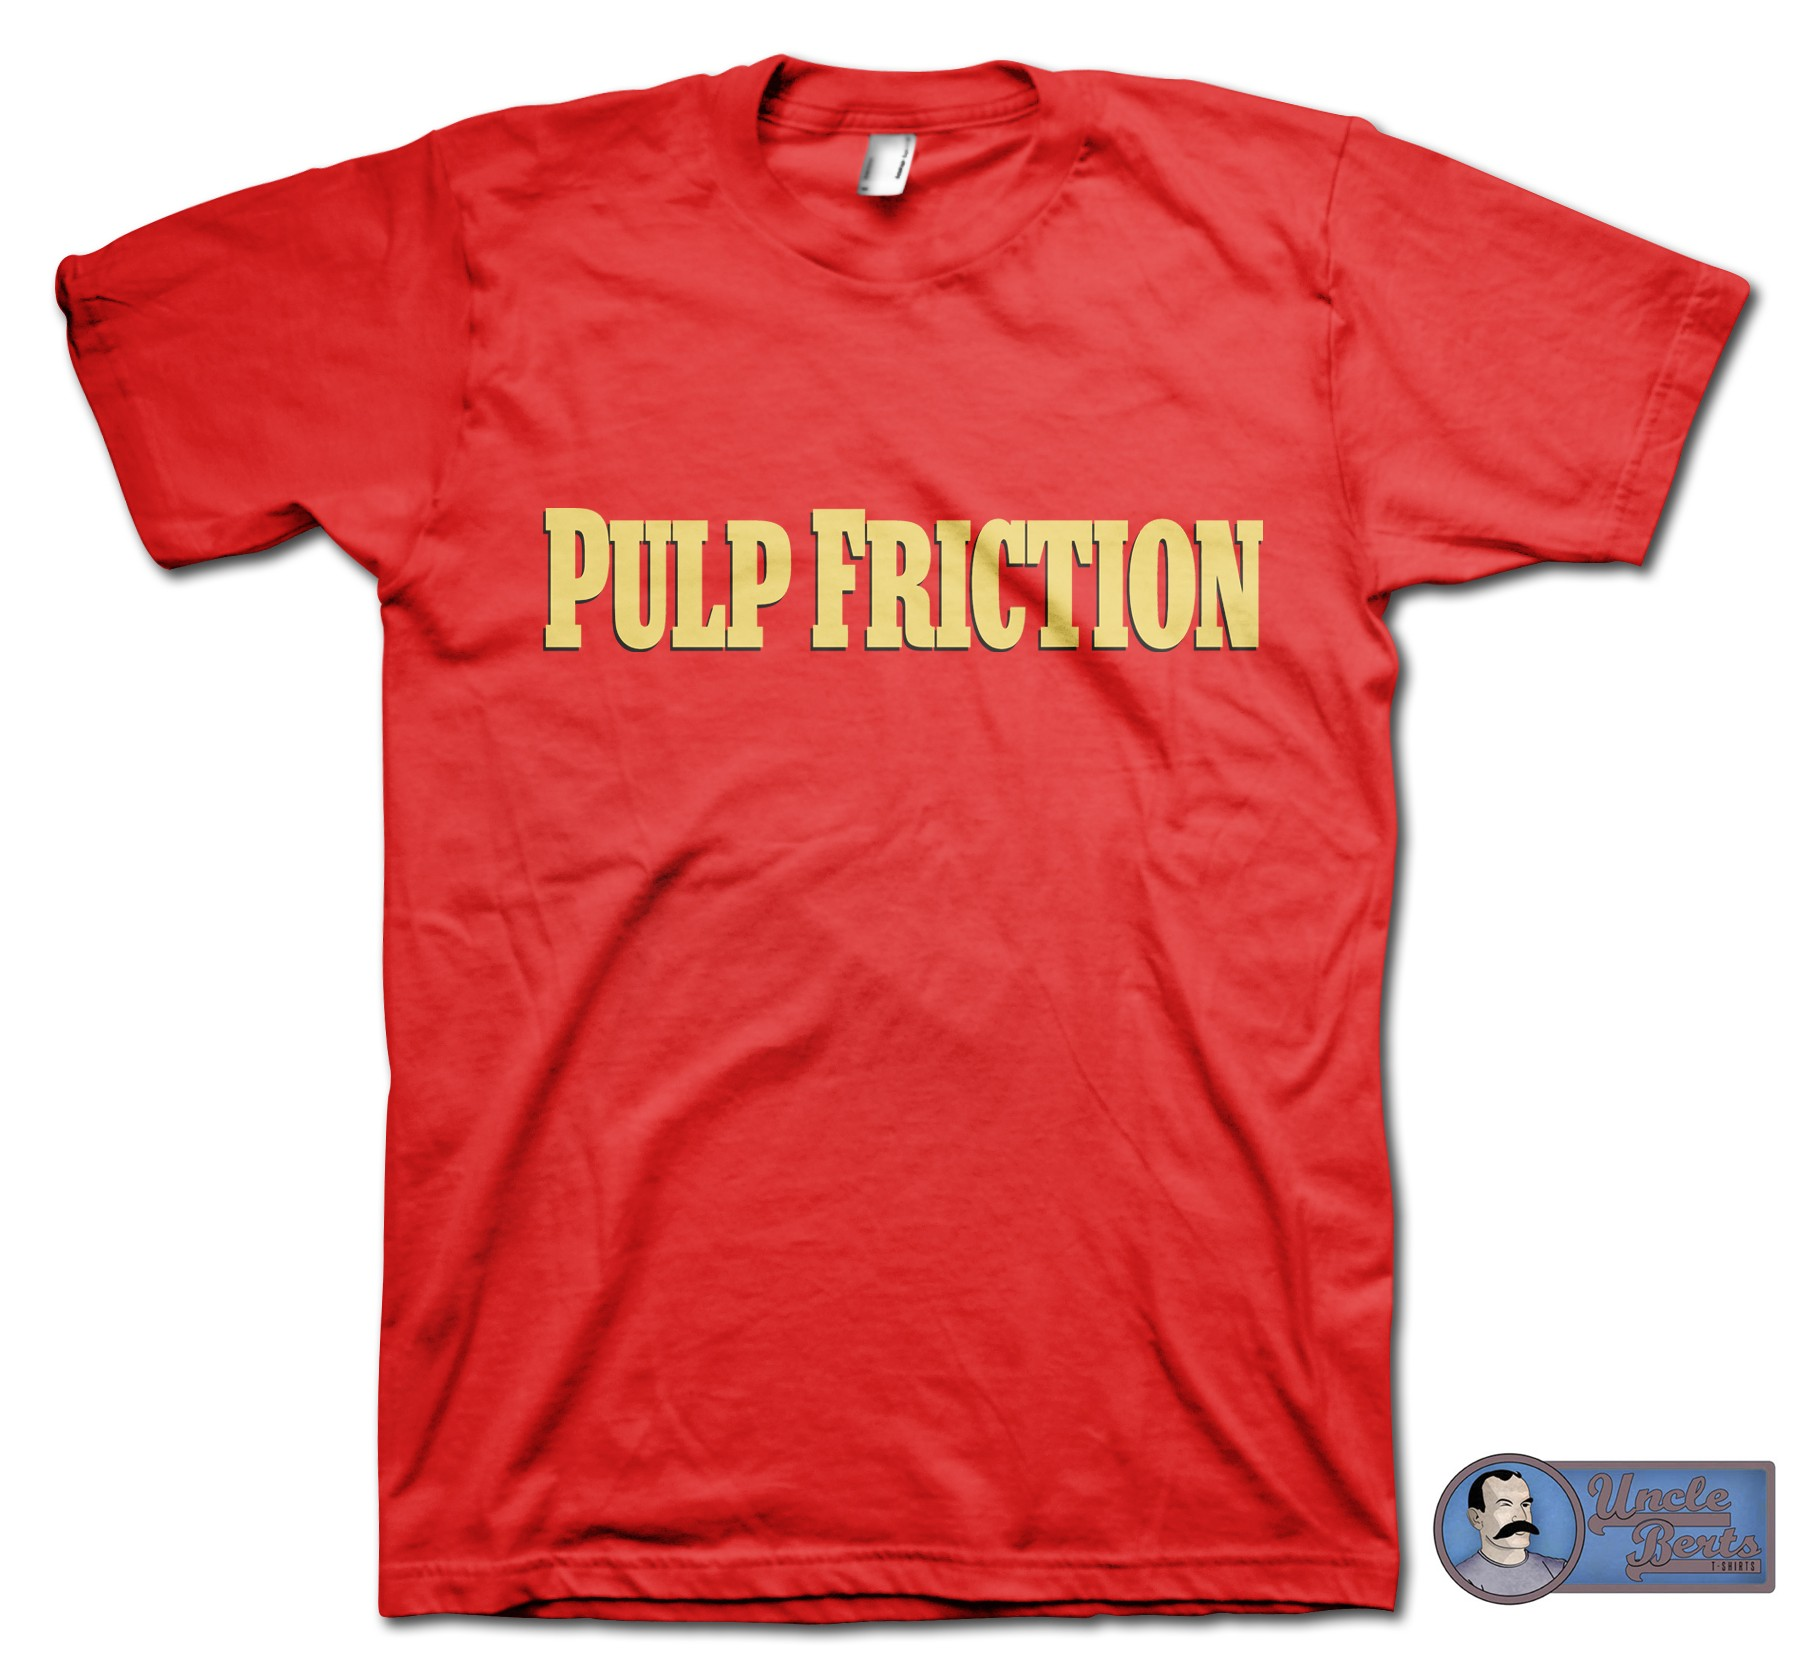 Pulp Friction Parody T-Shirt